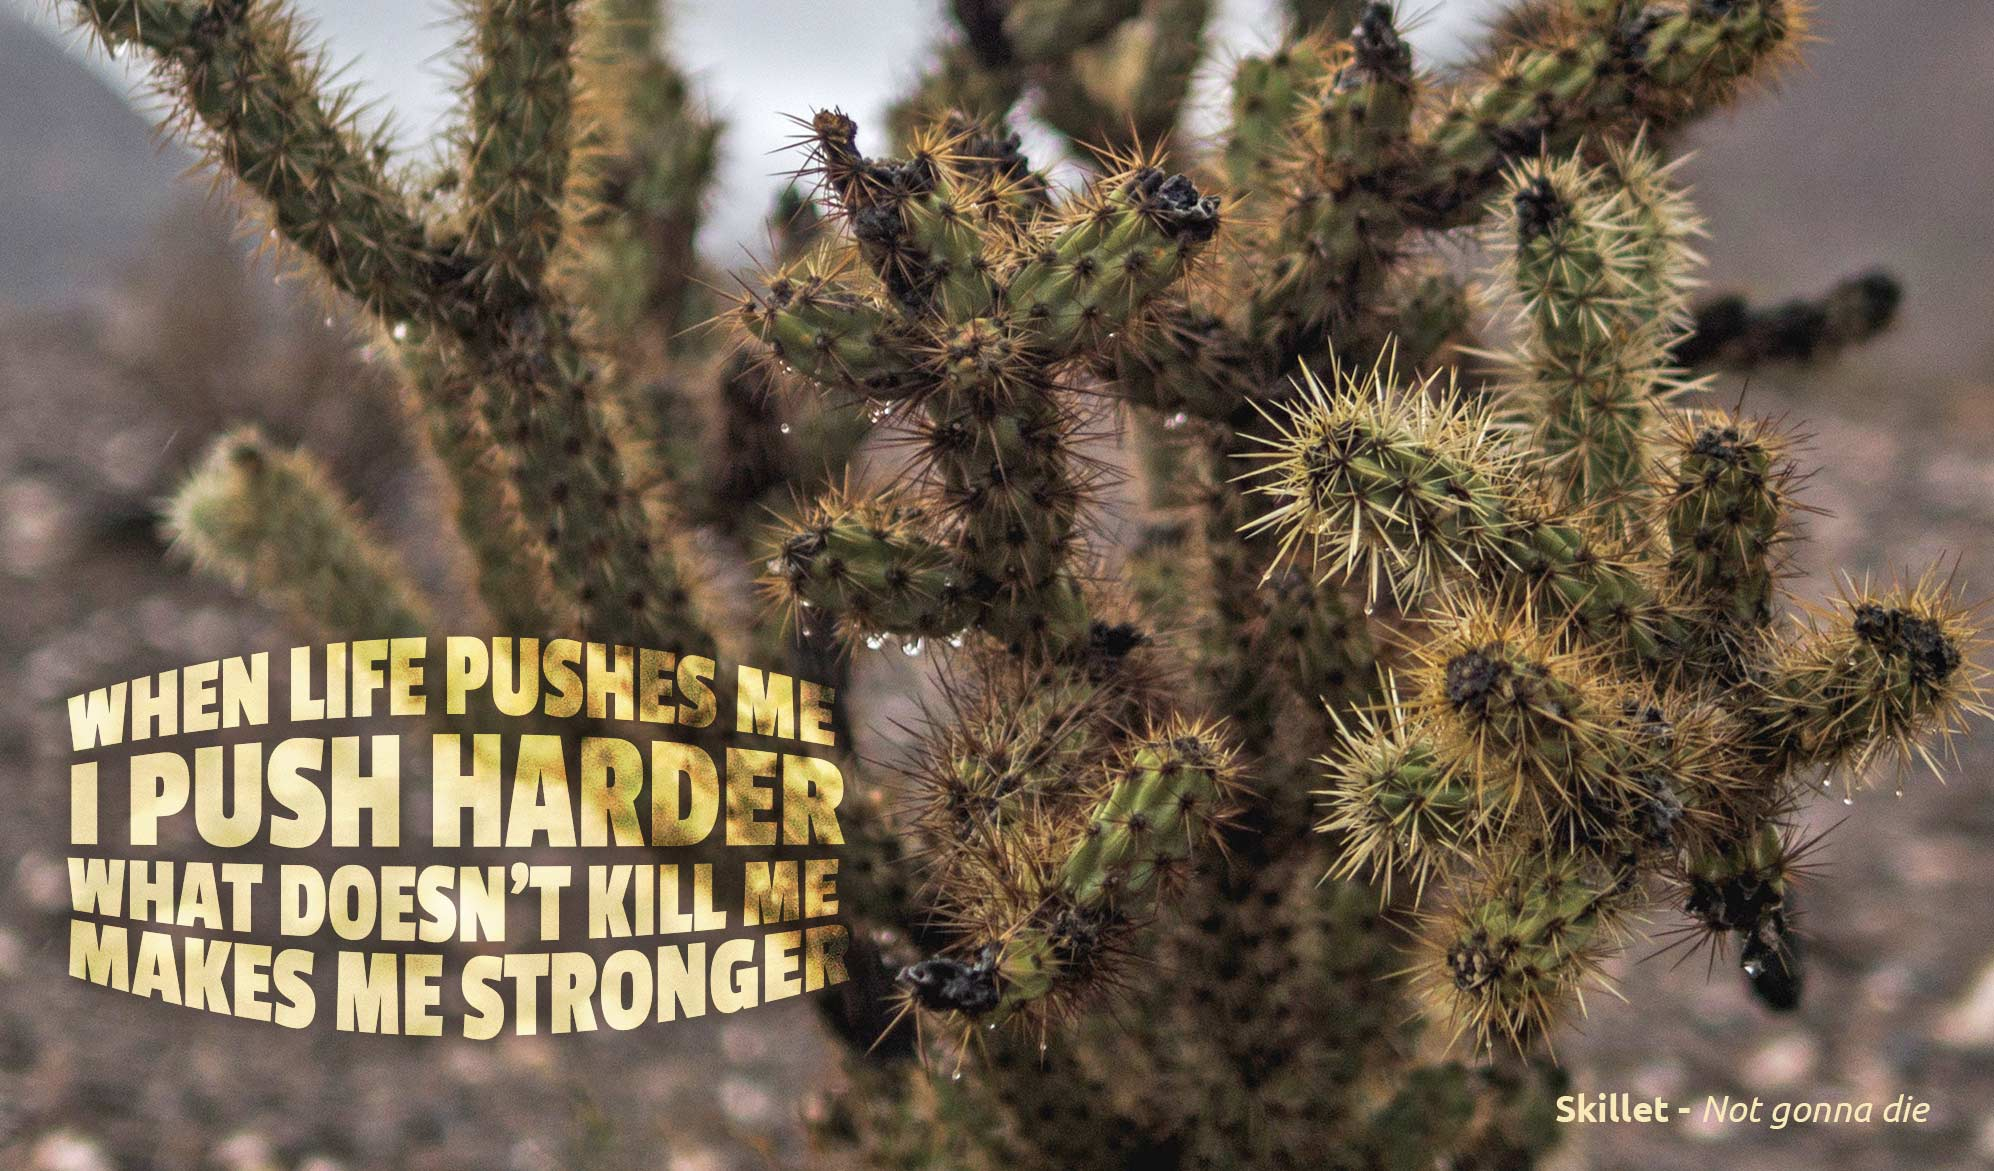 daily inspirational quote image: a Joshua tree close up